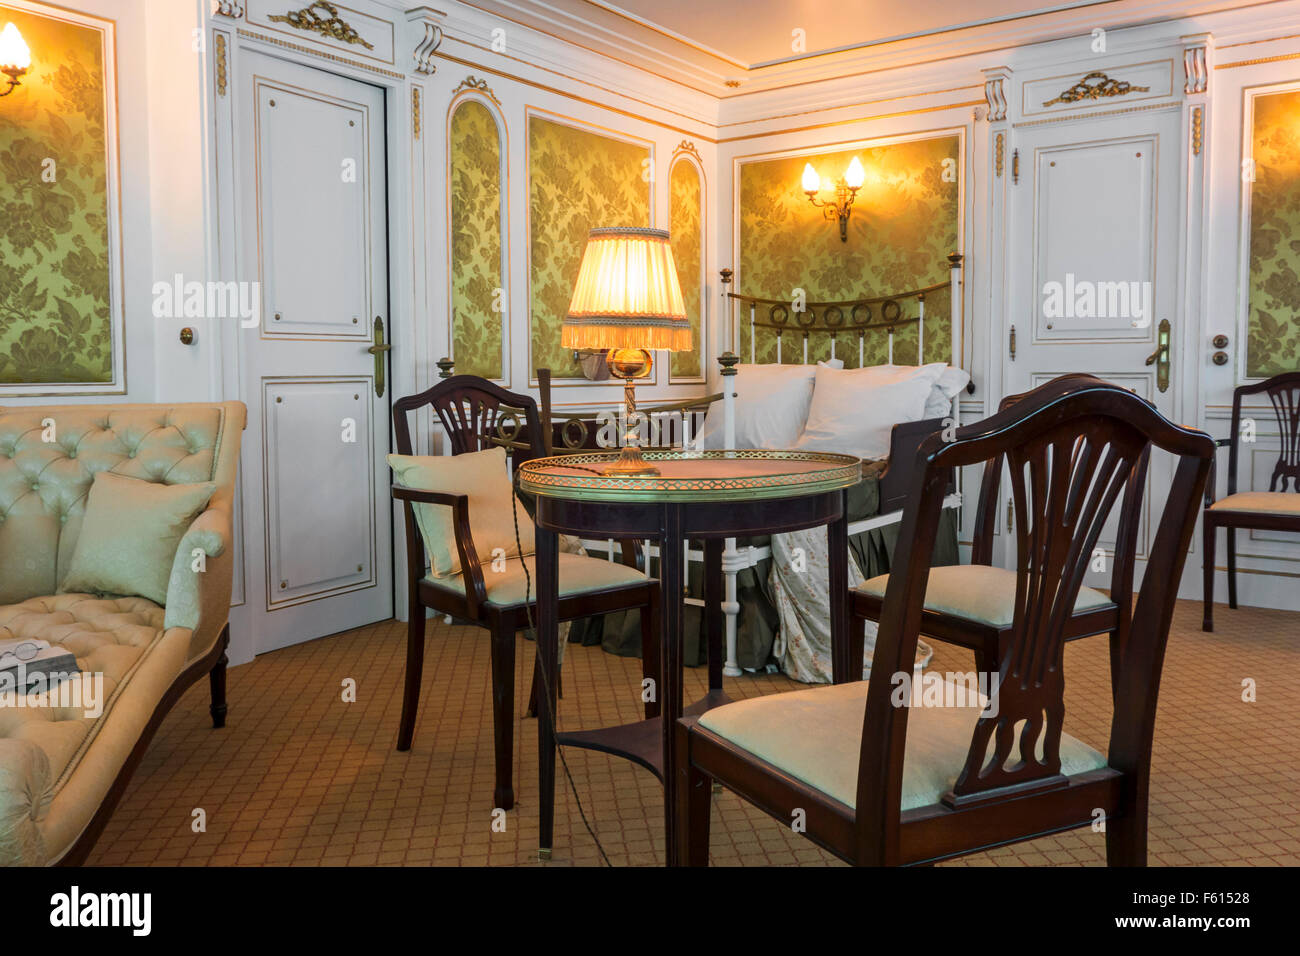 Reconstruction of first class cabin aboard the Titanic, Cité de la Mer, maritime museum in Cherbourg, Normandy, - Stock Image